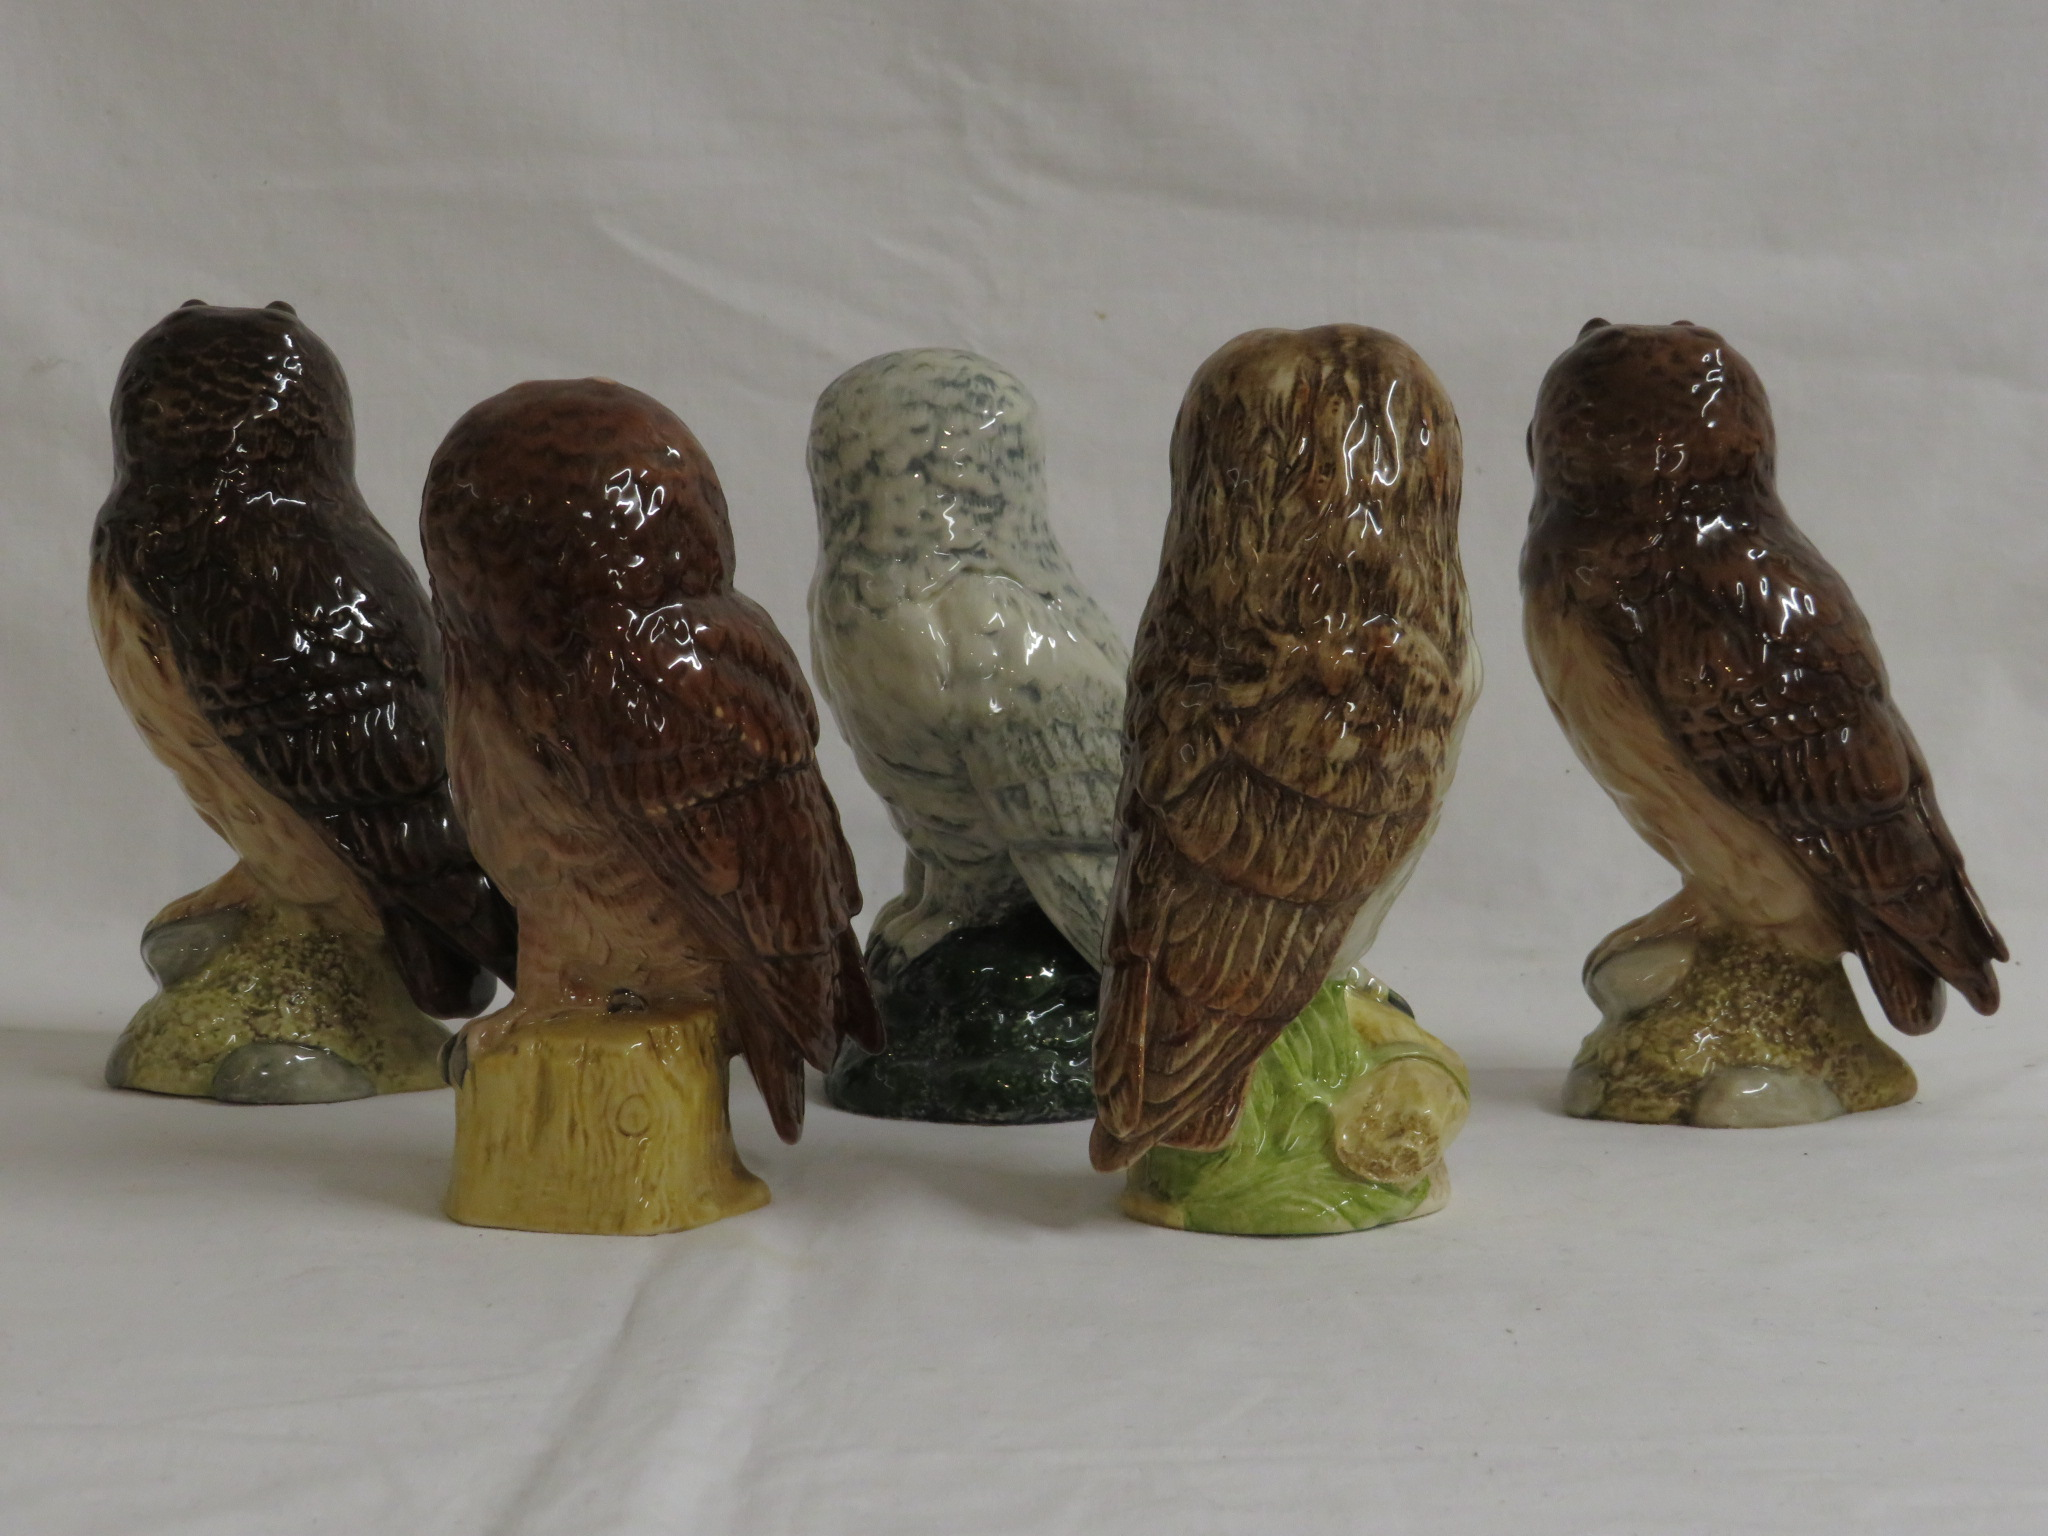 Lot 58 - Five Royal Doulton Whyte & Mackay 200ml whisky decanters modelled by John G. Tongue as owls with